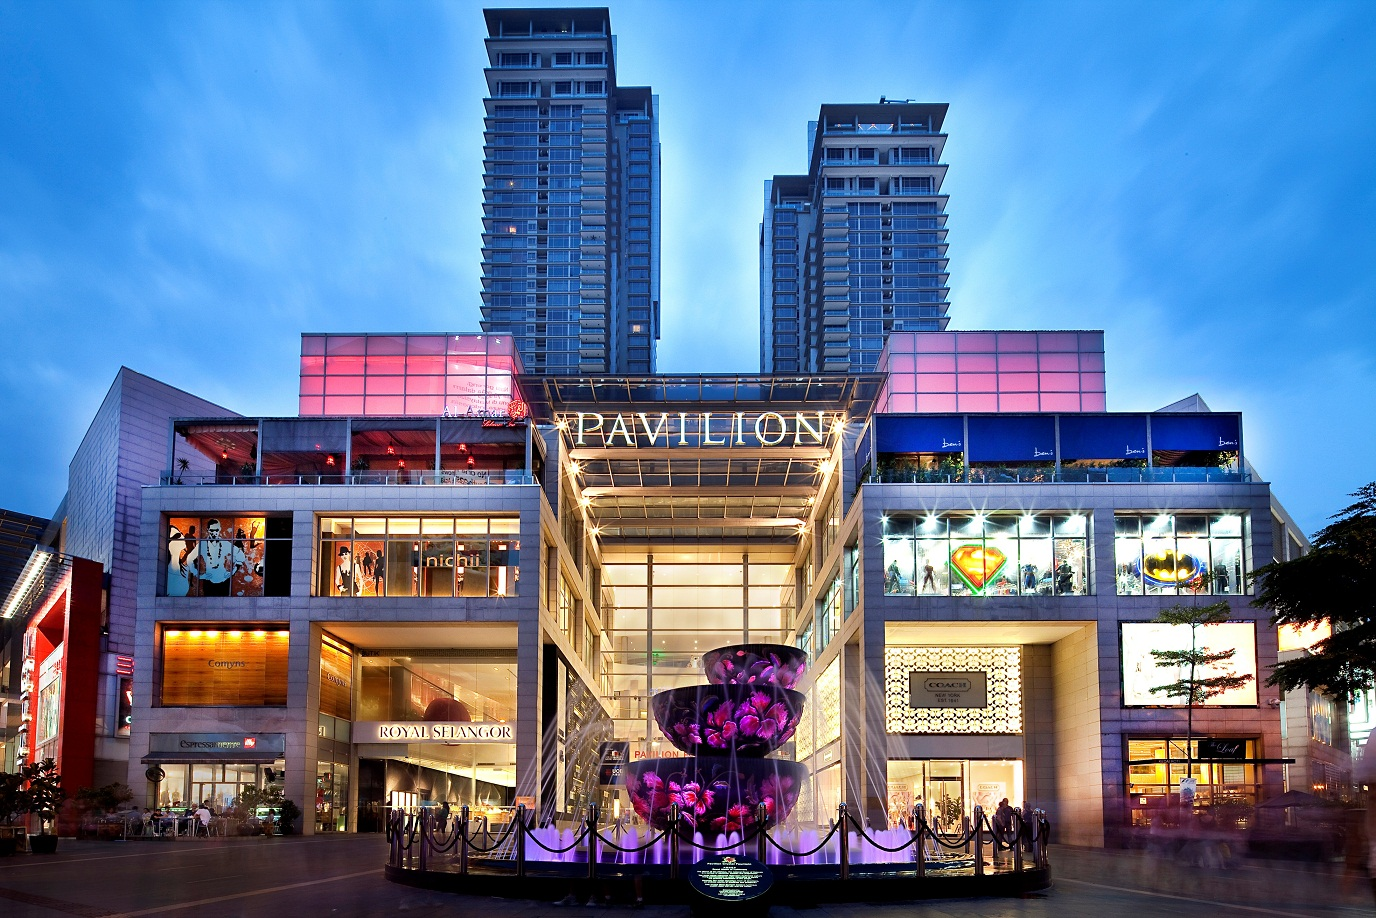 The Pavilion shopping mall